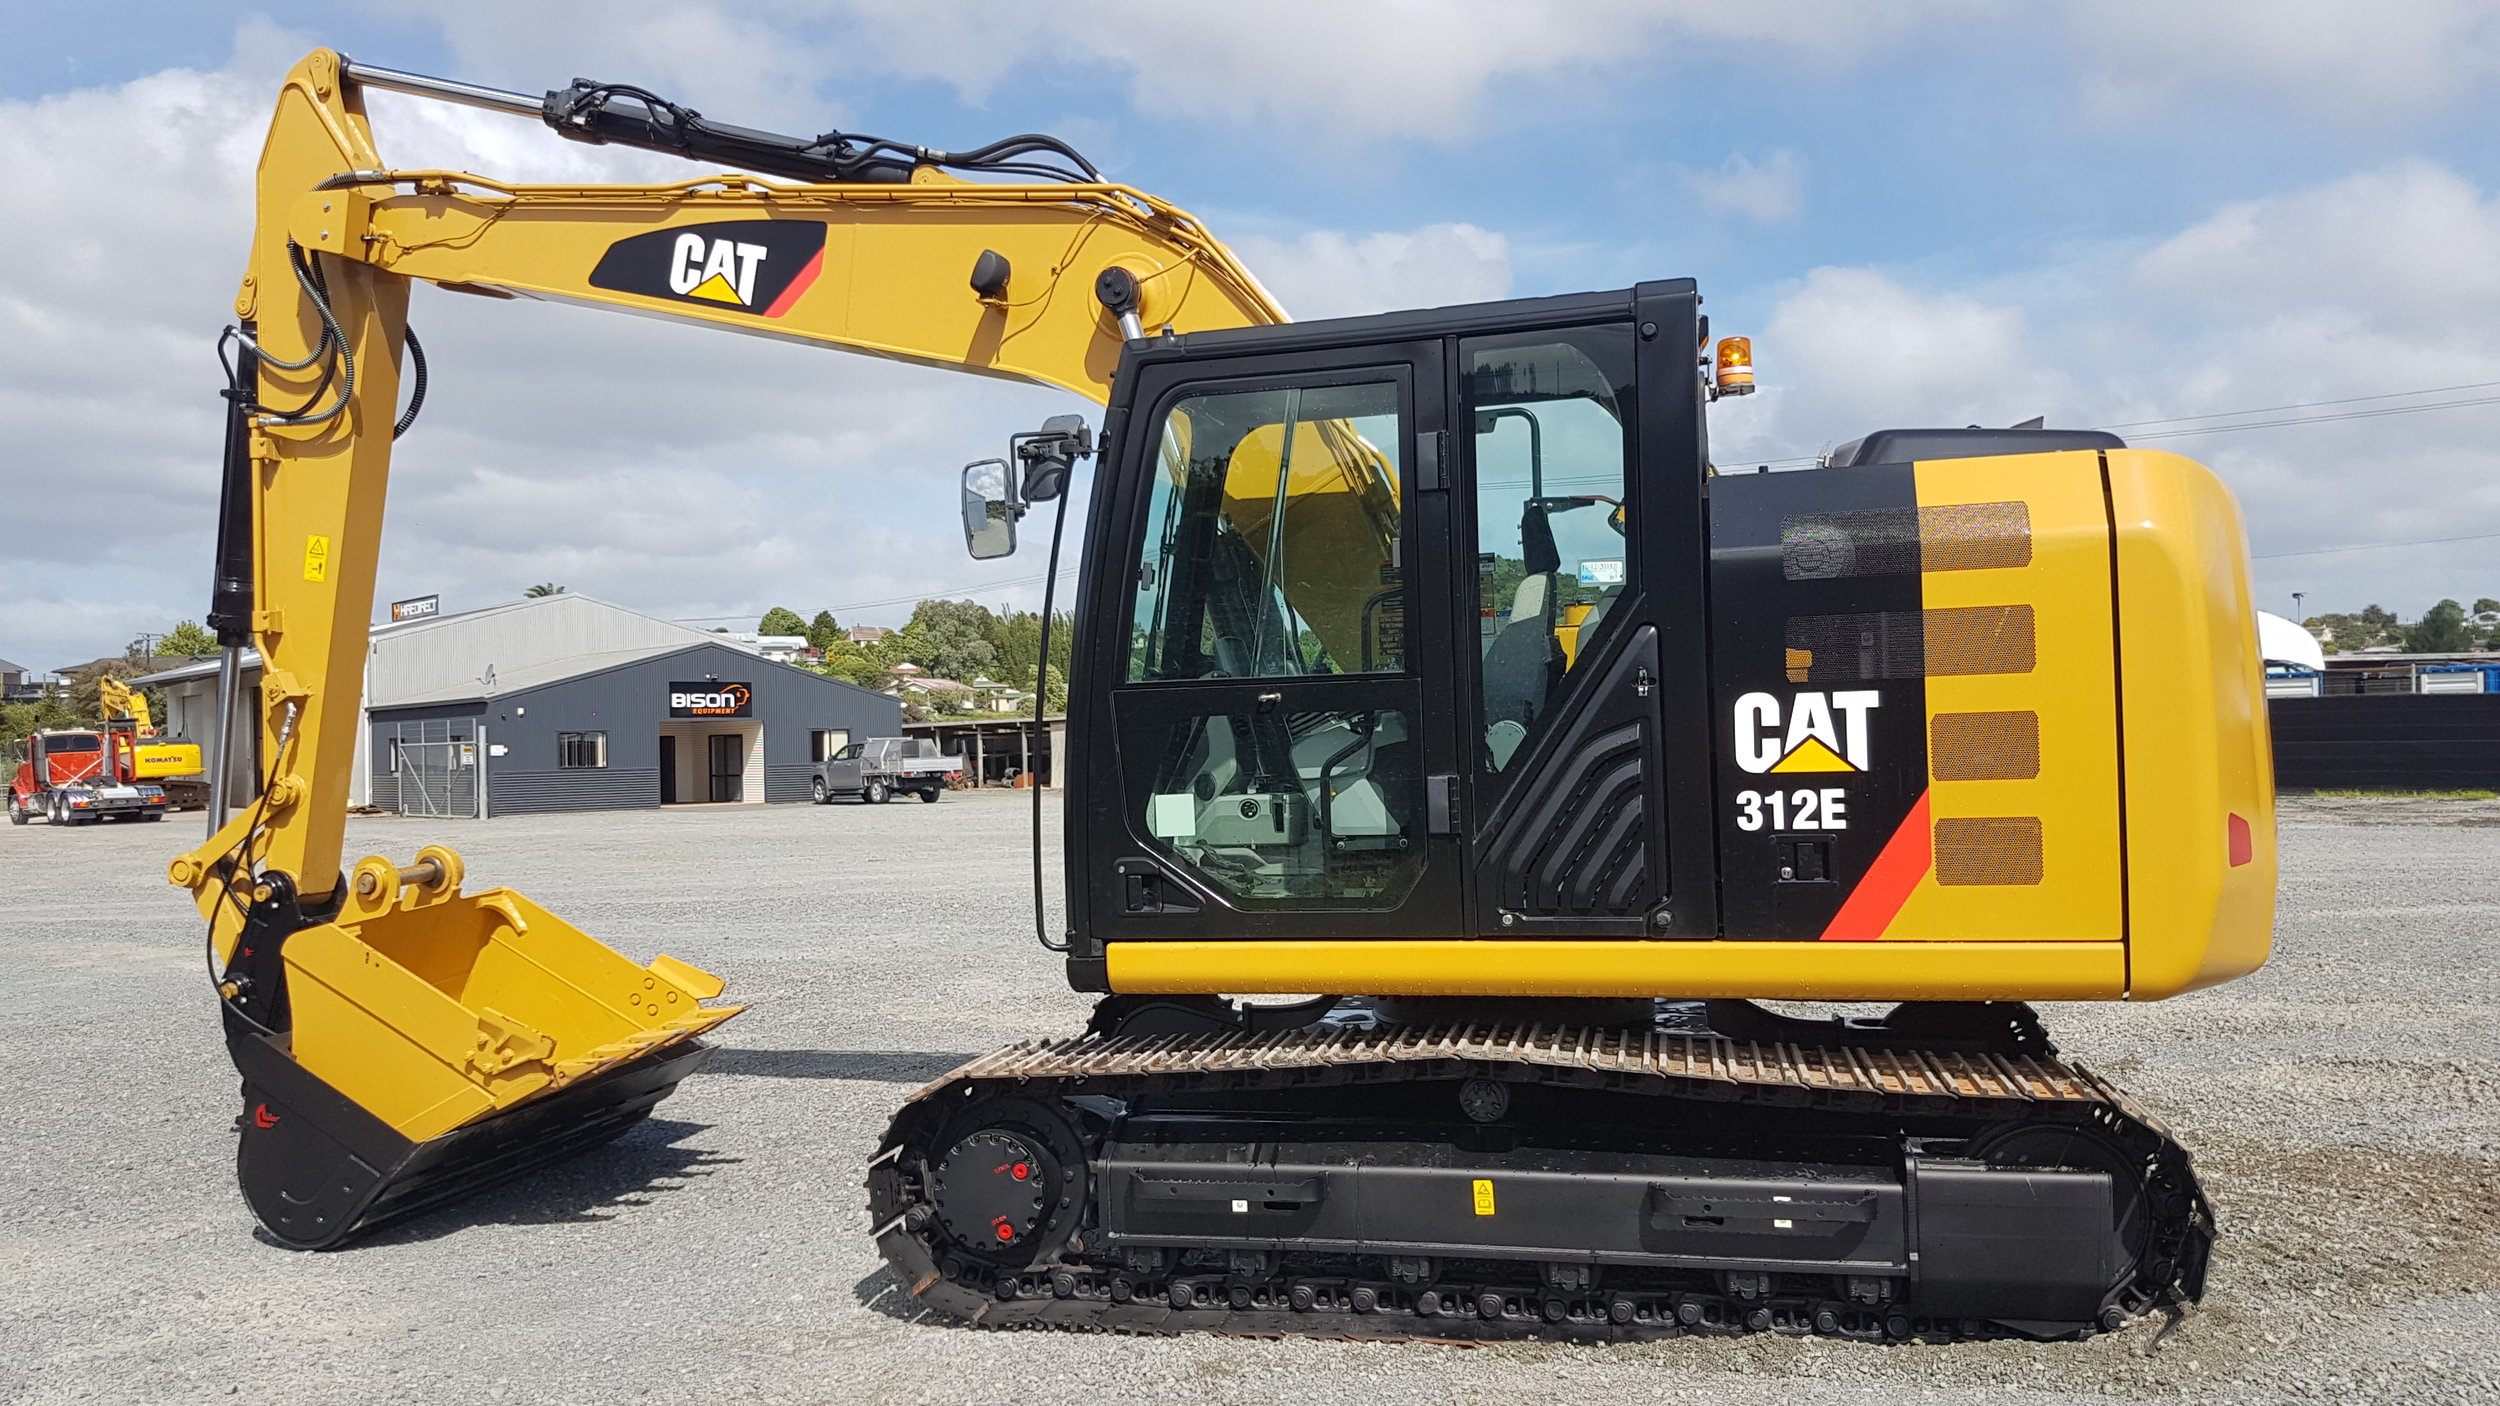 2014 CAT 312E, fitted with Robur Hitch & Tilt Bucket - only 130 hours!